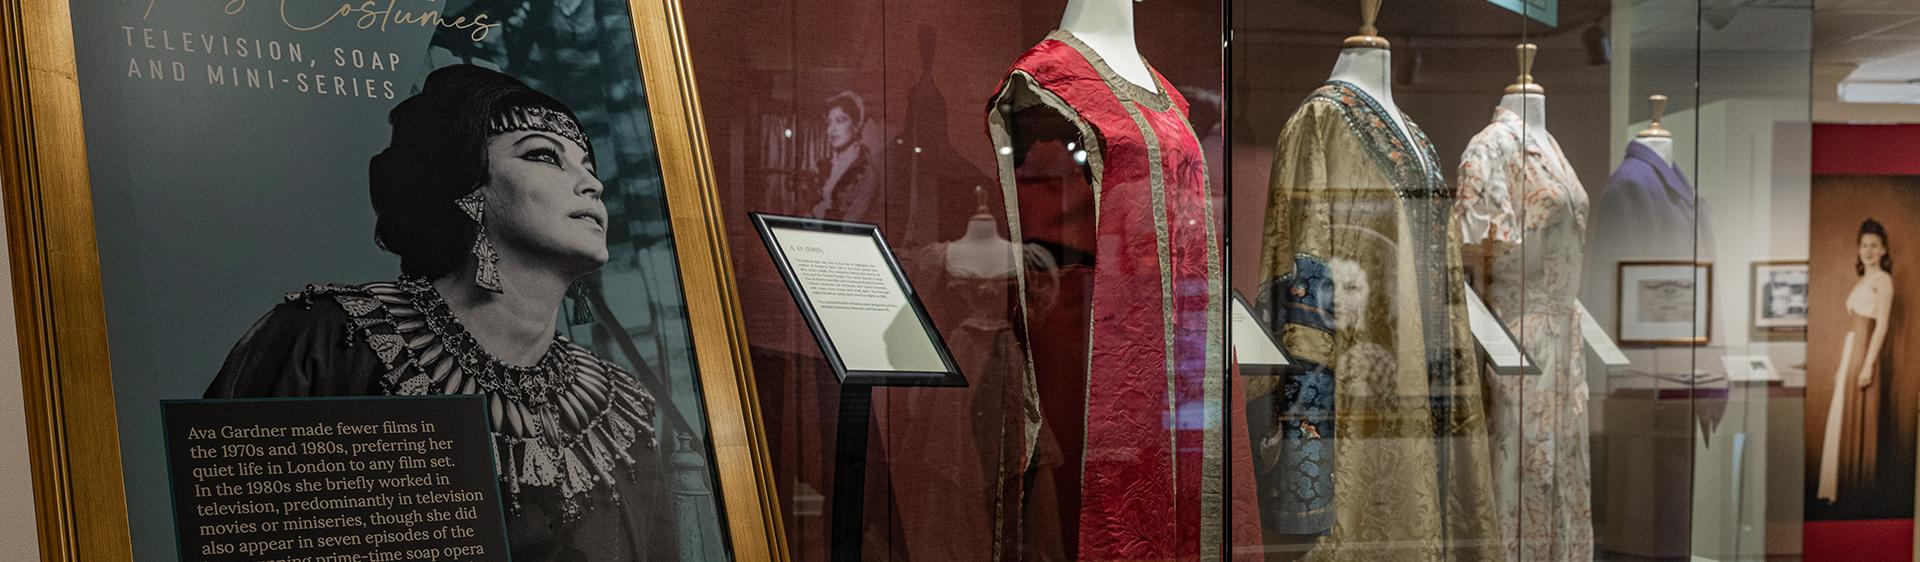 New exhibit of Ava Gardner's television roles featuring 4 new costumes.